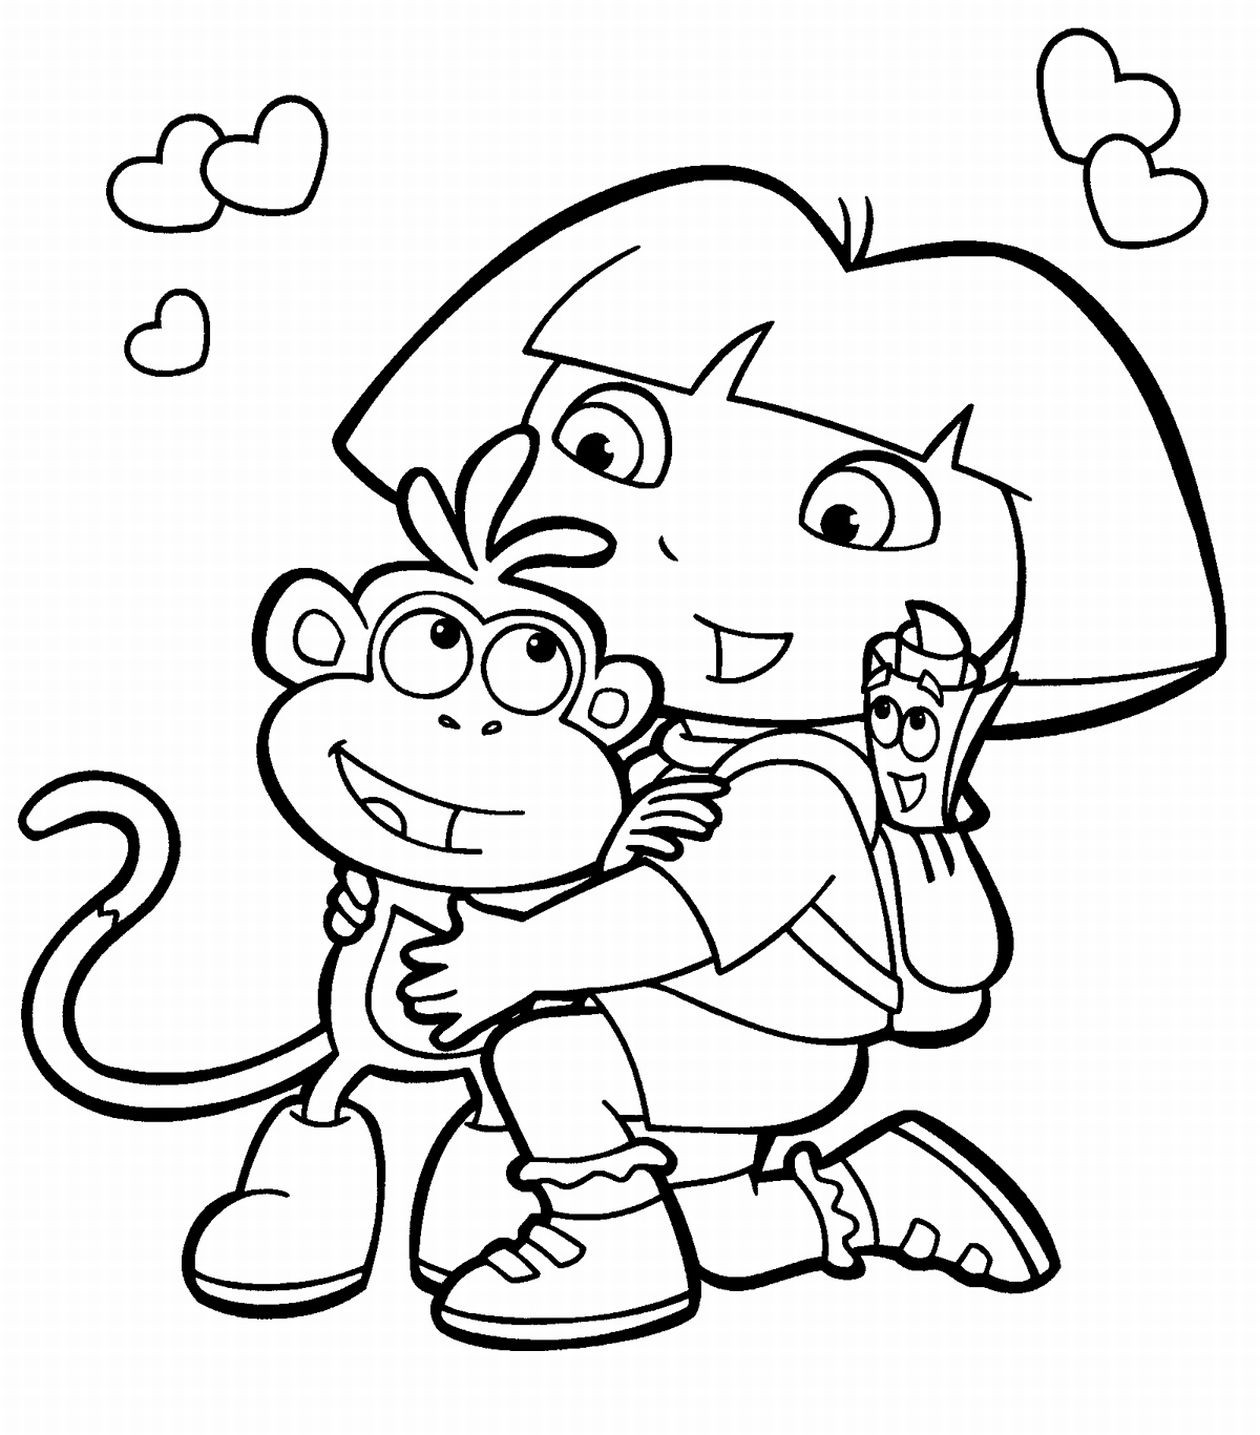 Children's Coloring Pages